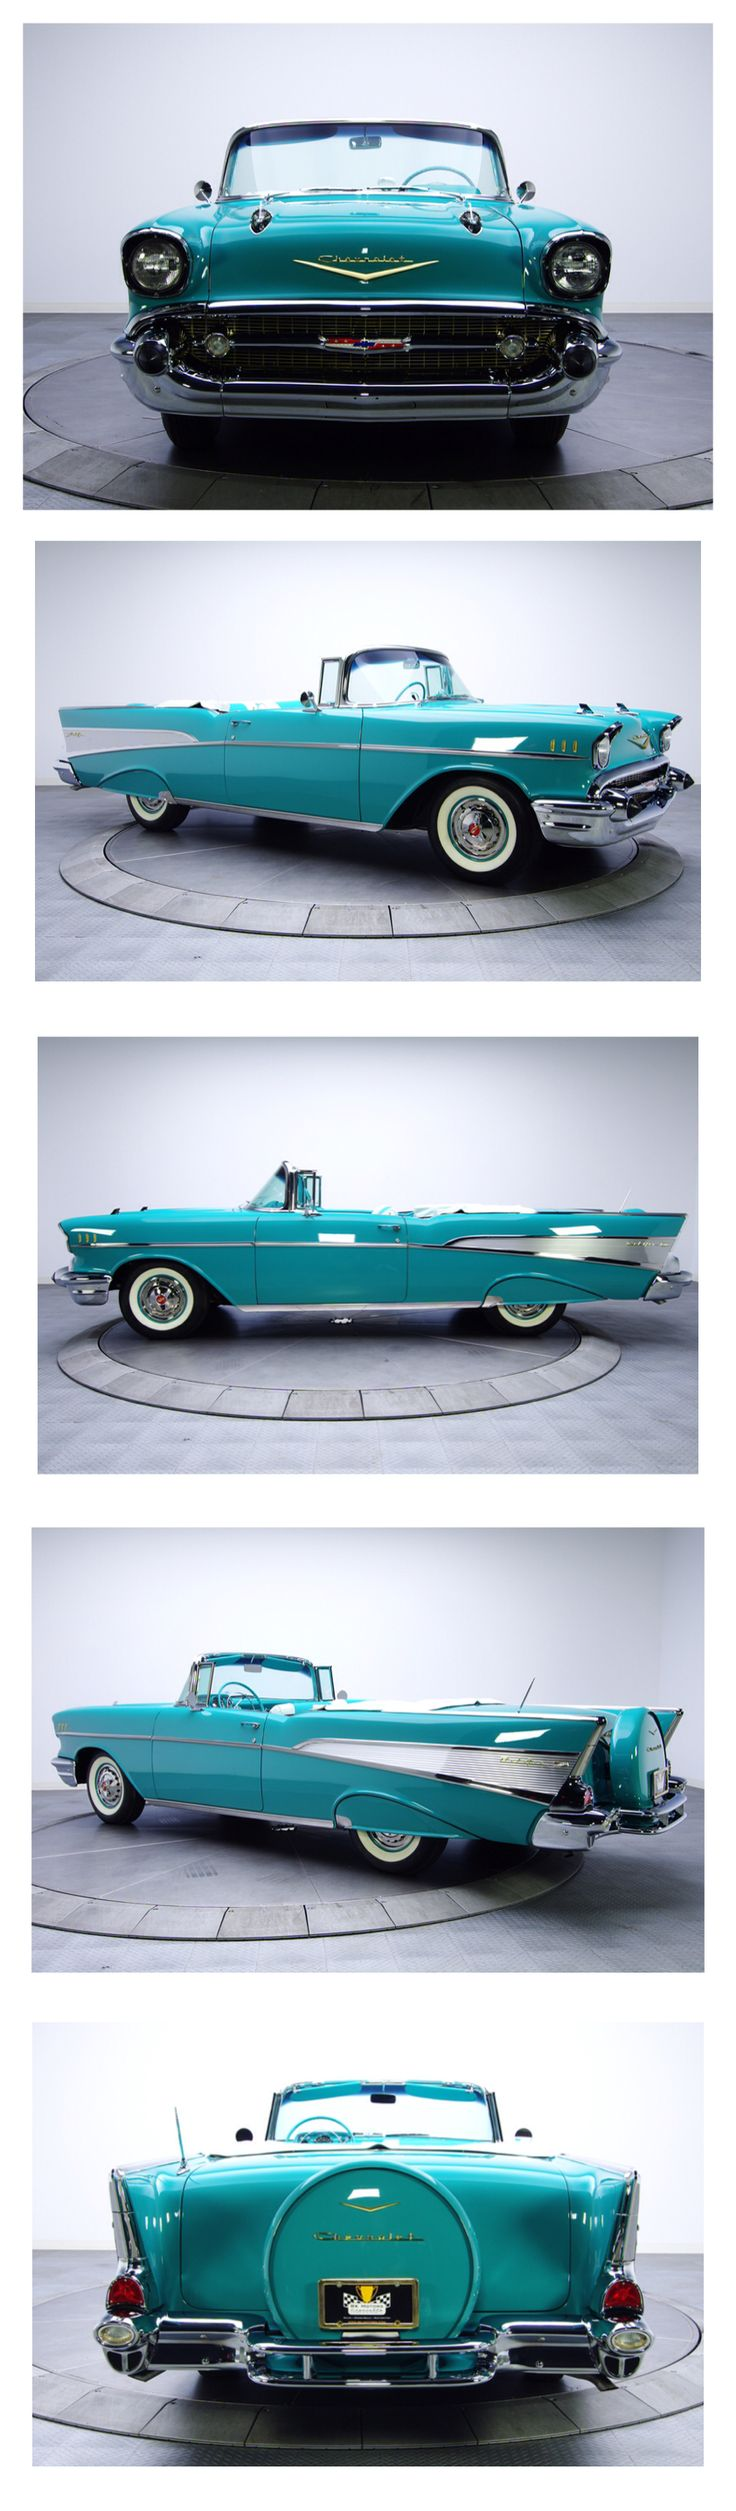 126 best American Metal images on Pinterest | Vintage cars, Cars and ...